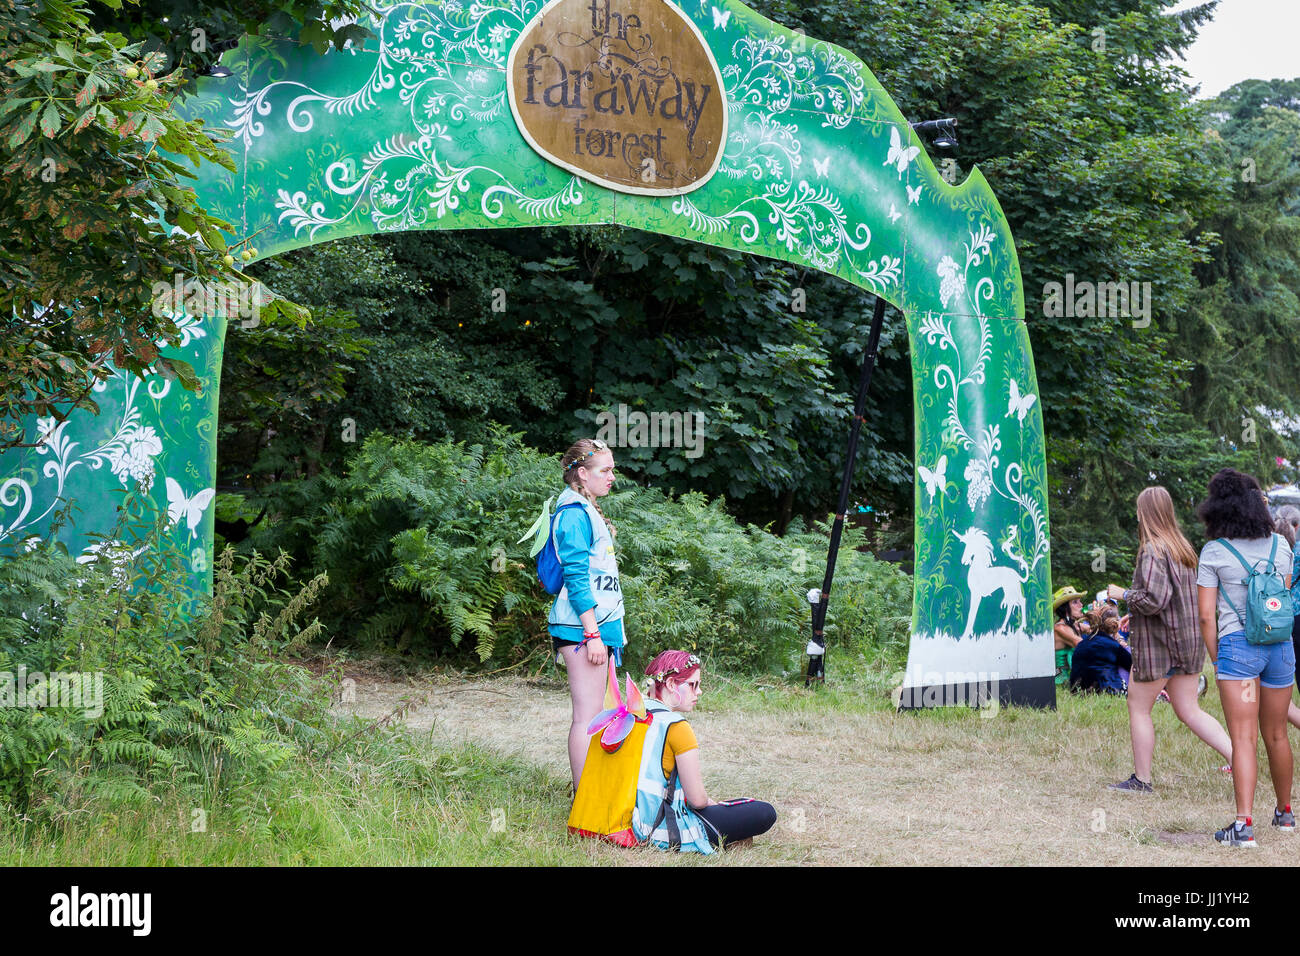 Sour fairies outside the Faraway Forest. Latitude Festival, Suffolk - Stock Image